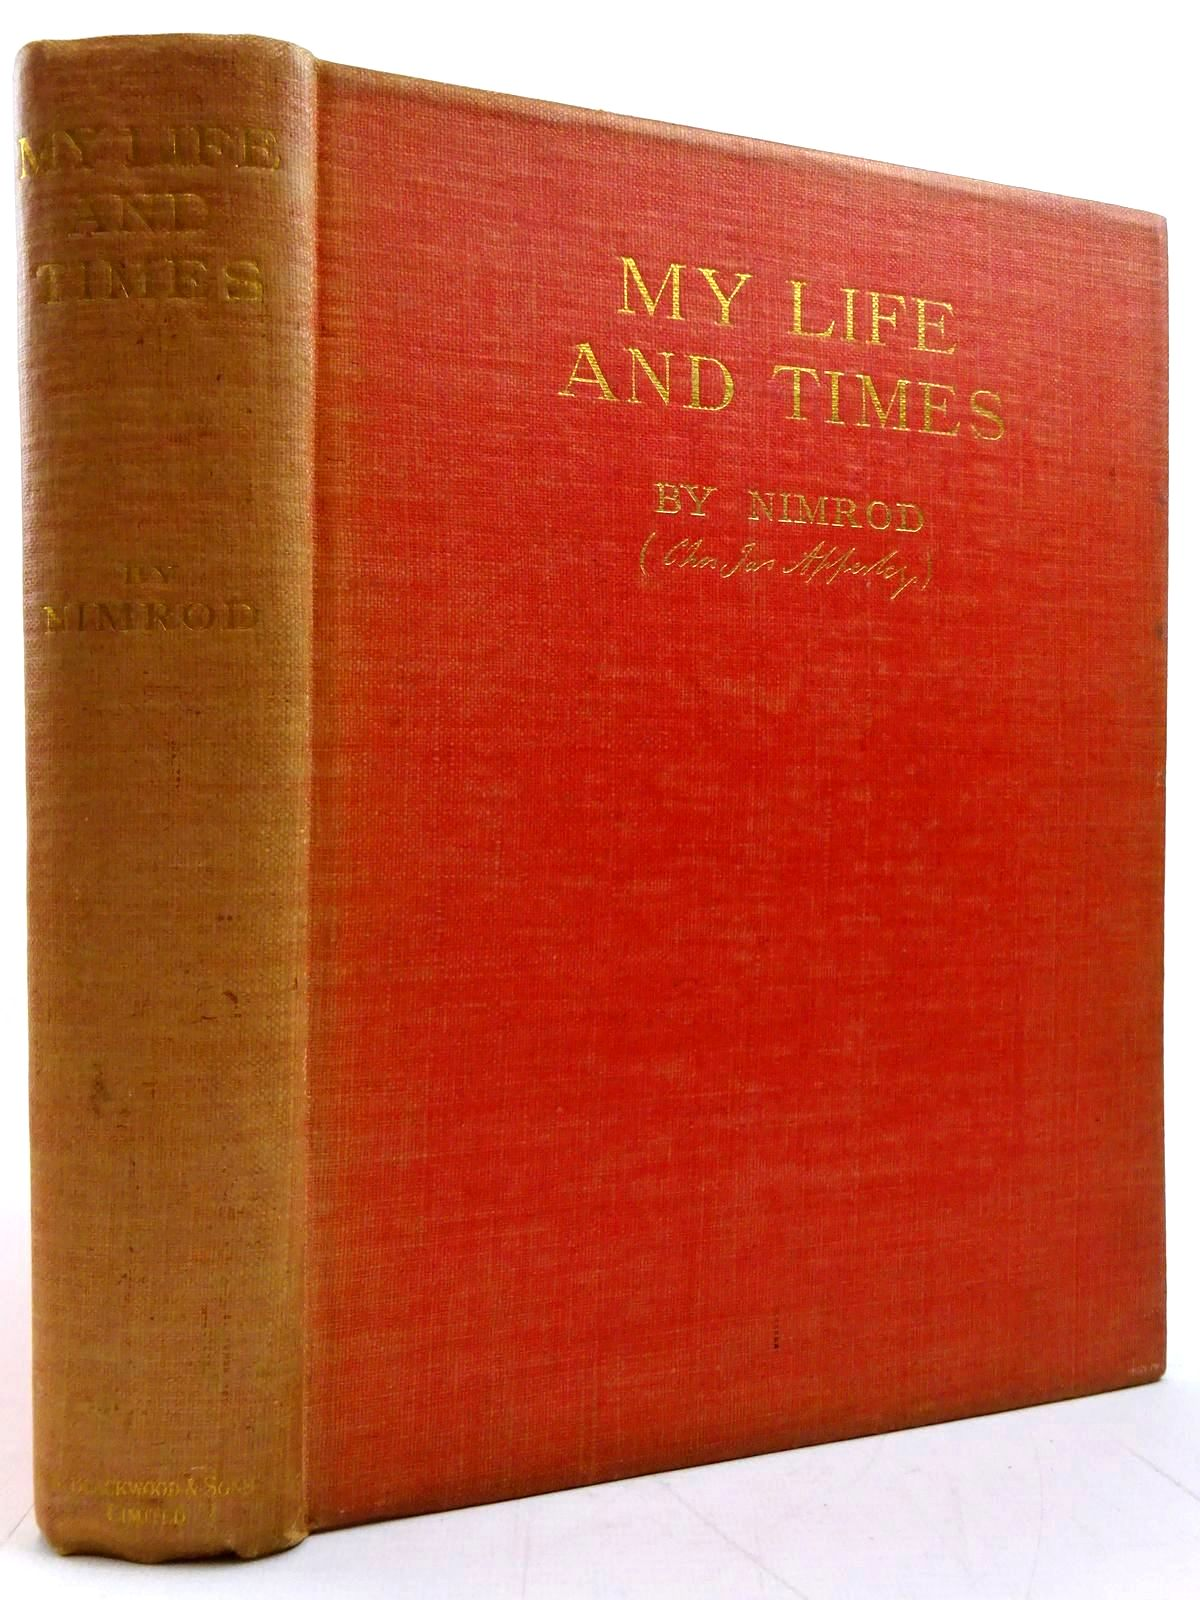 Photo of MY LIFE AND TIMES written by Nimrod,  Apperley, Charles published by William Blackwood & Sons Ltd. (STOCK CODE: 2131320)  for sale by Stella & Rose's Books